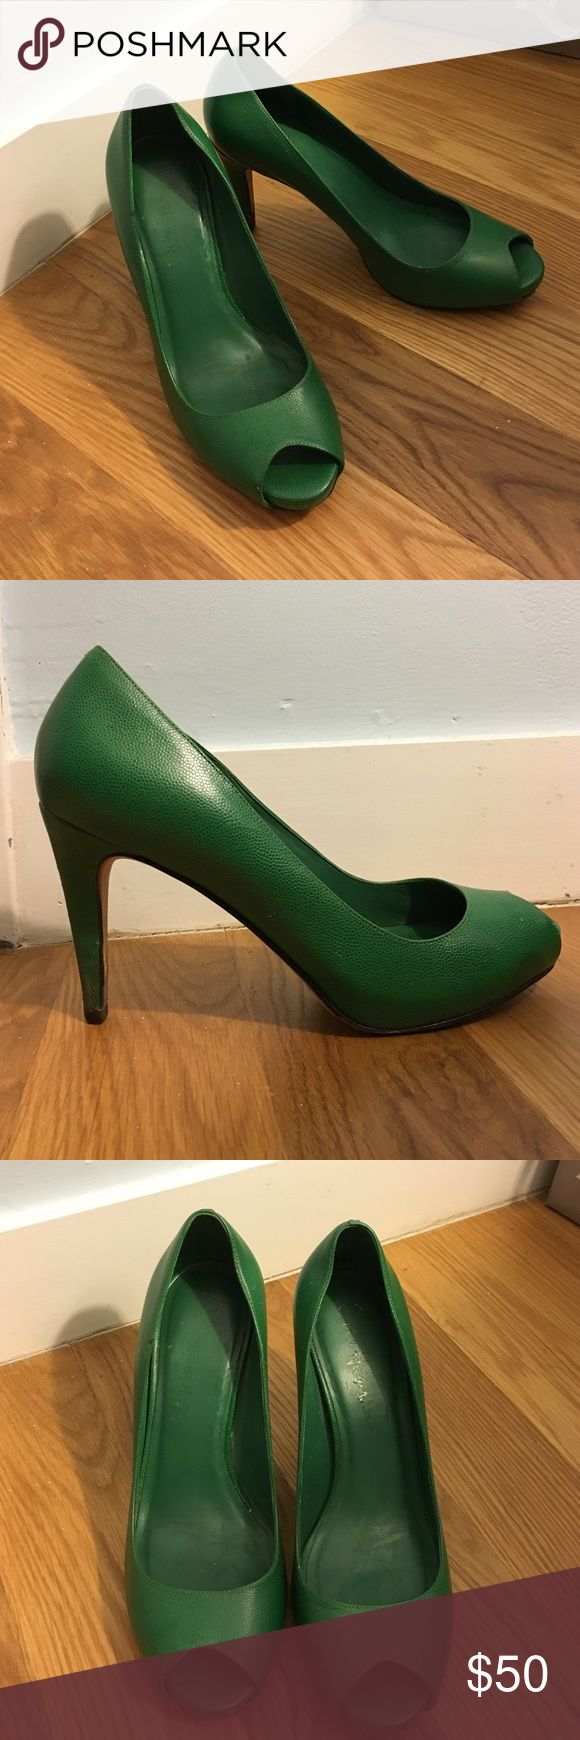 Green Cole Haan peep toe pumps Green leather peer toe pumps from Cole Haan!  Gently worn, but in good condition.  This pair of statement shoes will make an outfit. Cole Haan Shoes Heels